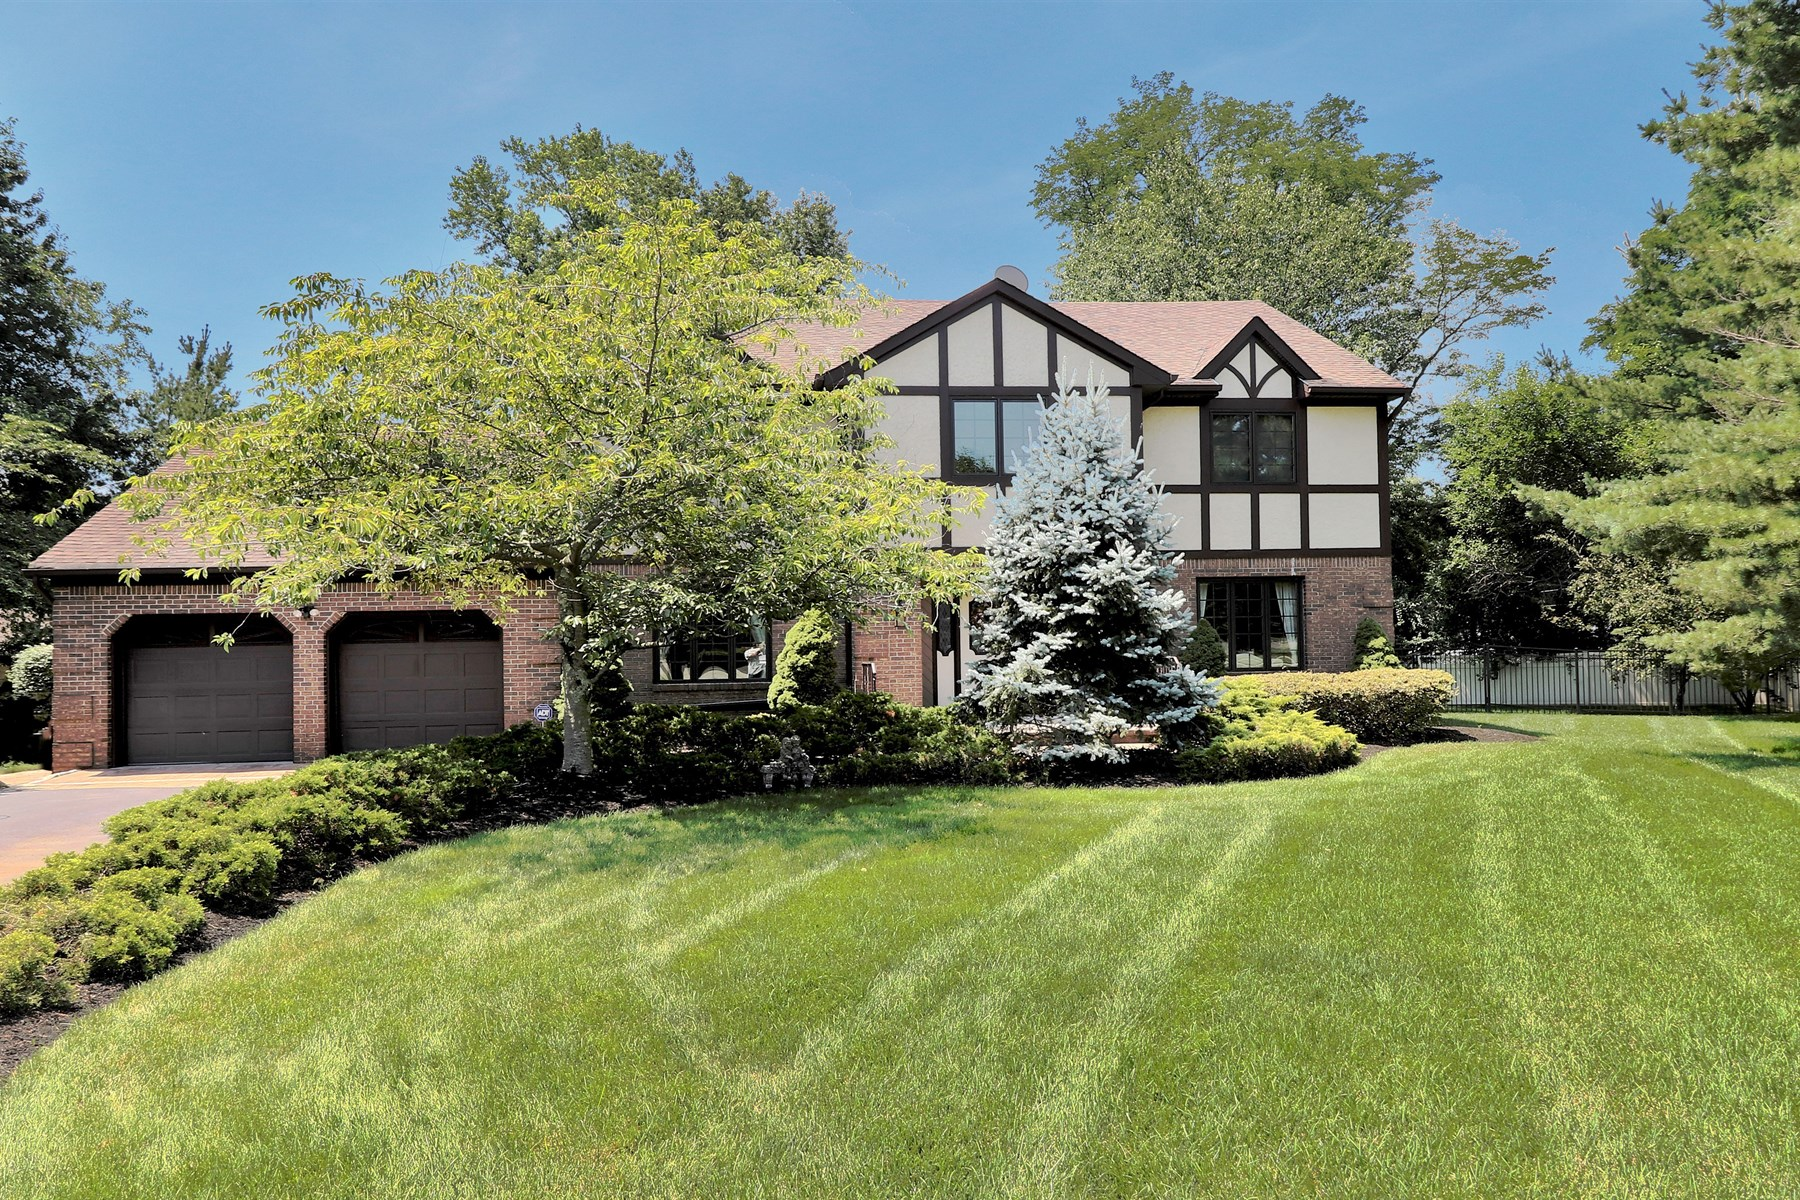 Single Family Home for Sale at Custom Center Hall Colonial 51 Colony Drive Middletown, New Jersey, 07748 United States